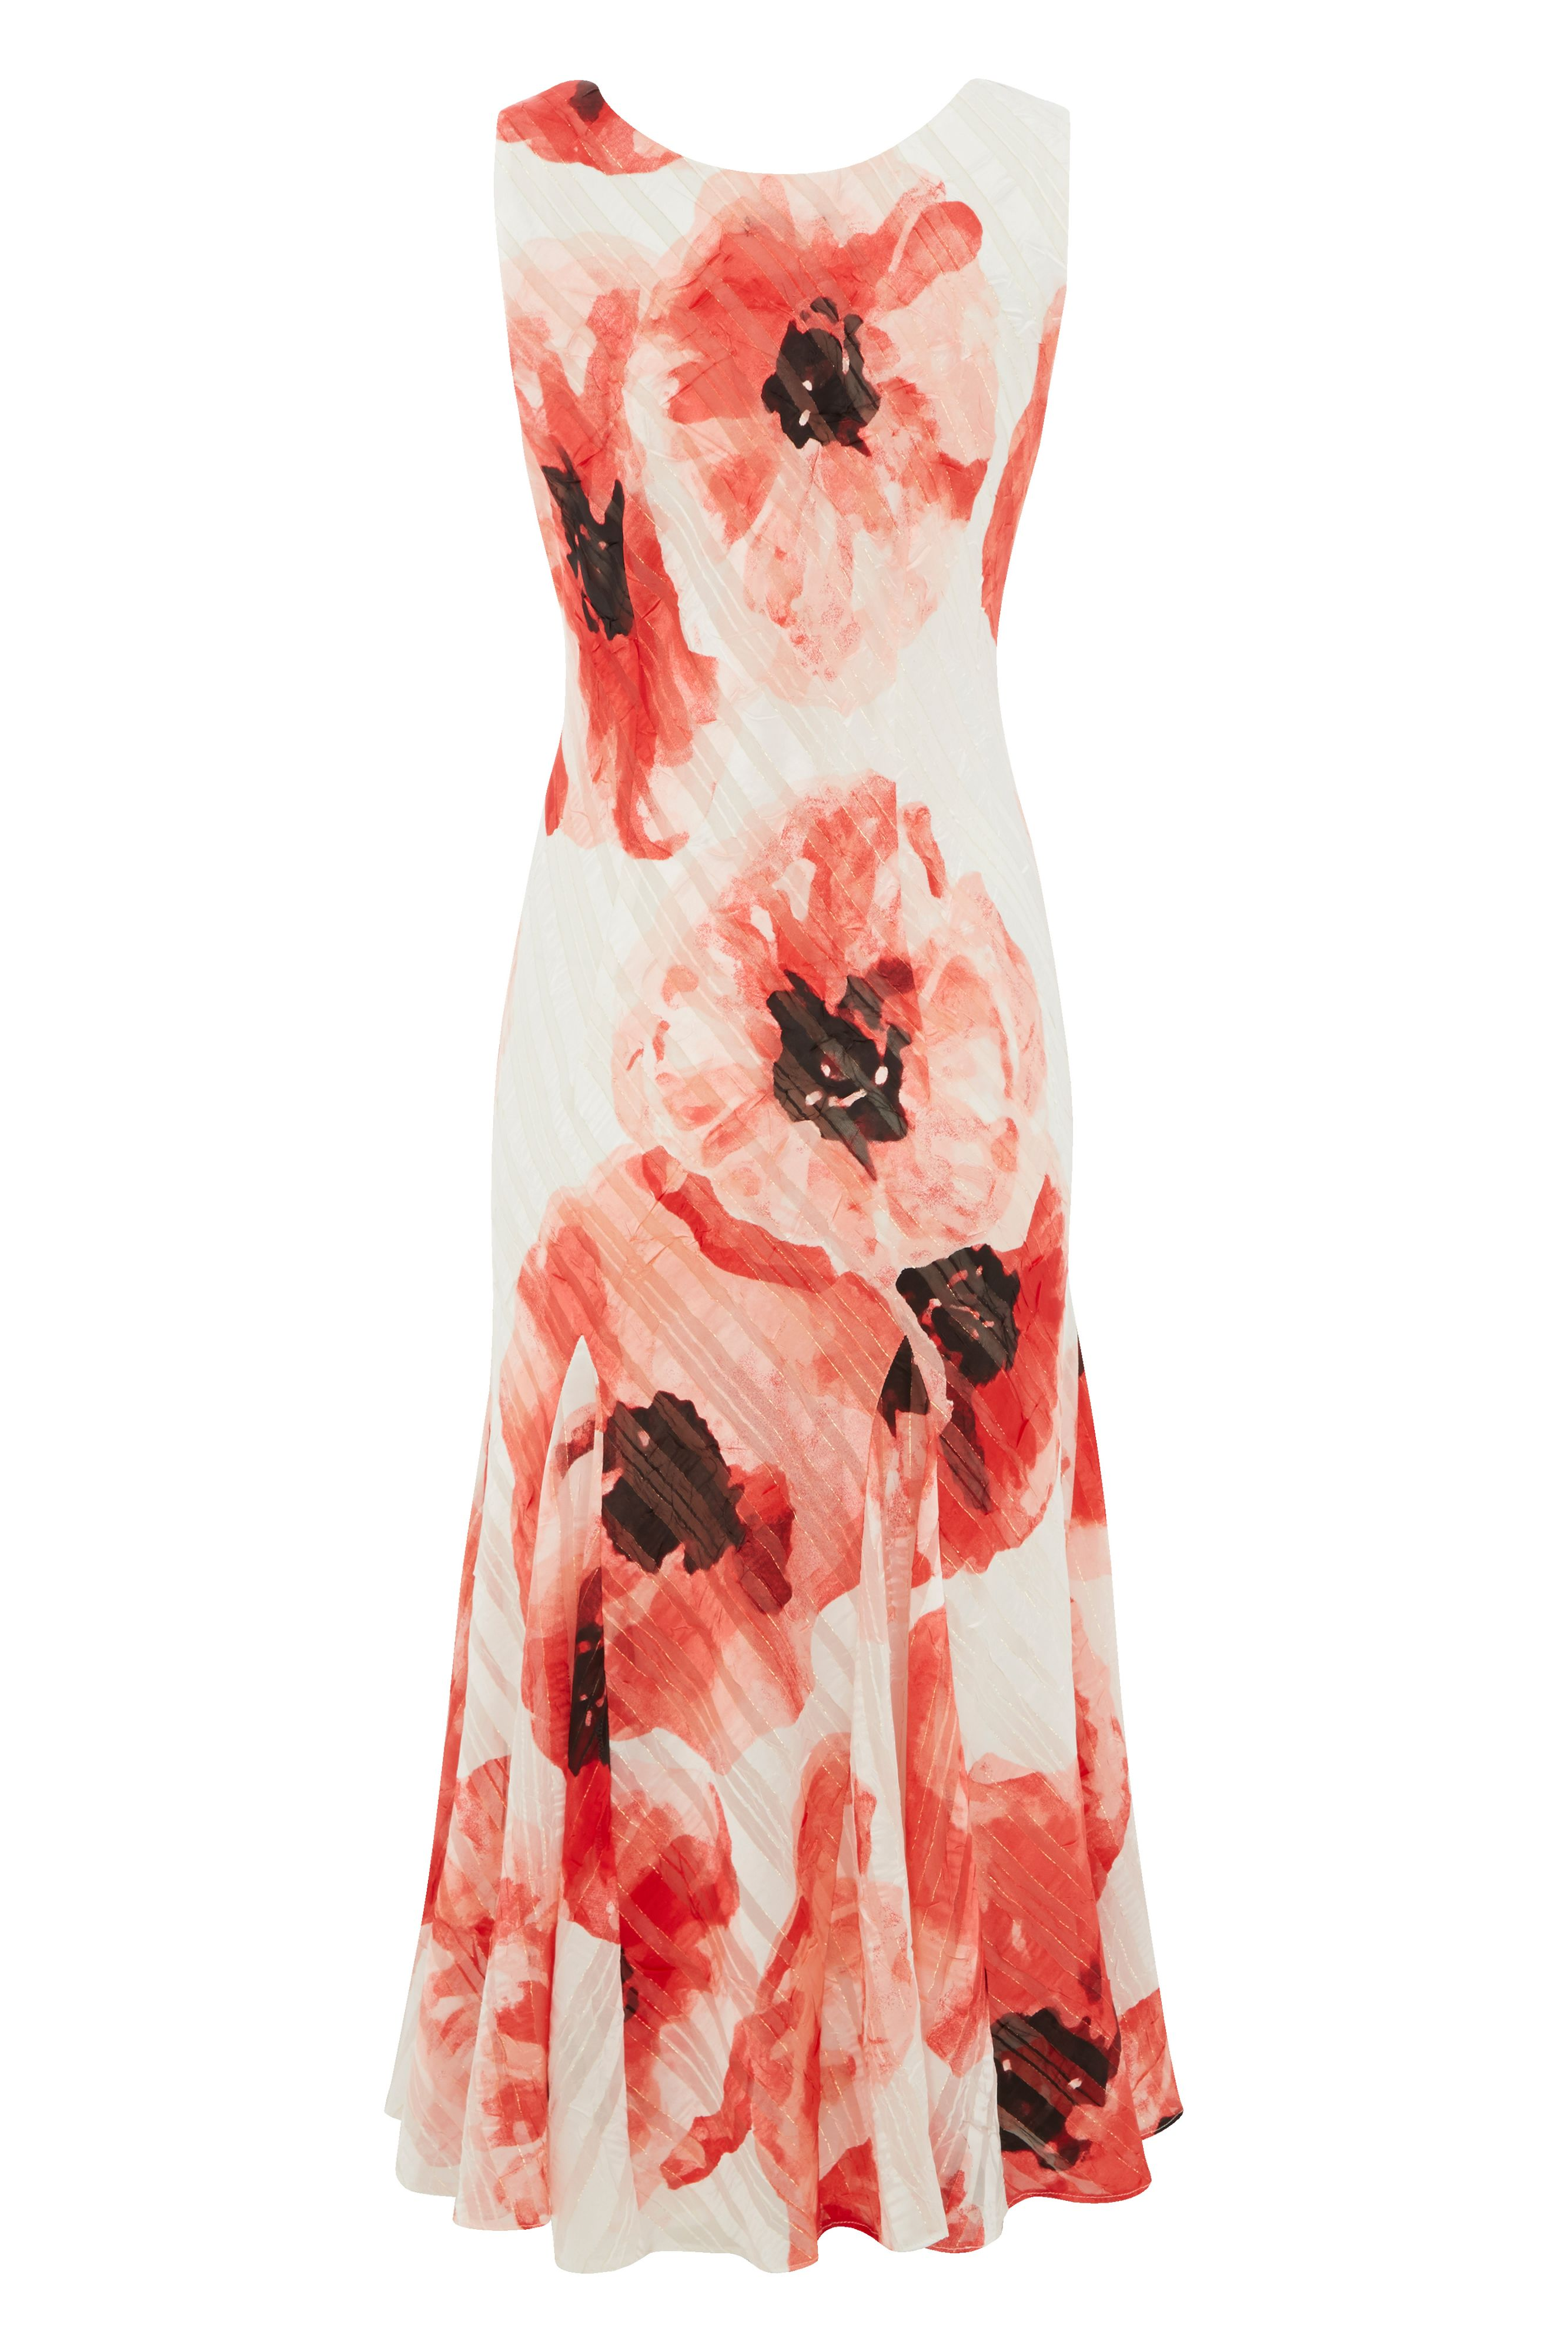 Roman Originals Satin Poppy Print Dress, Red